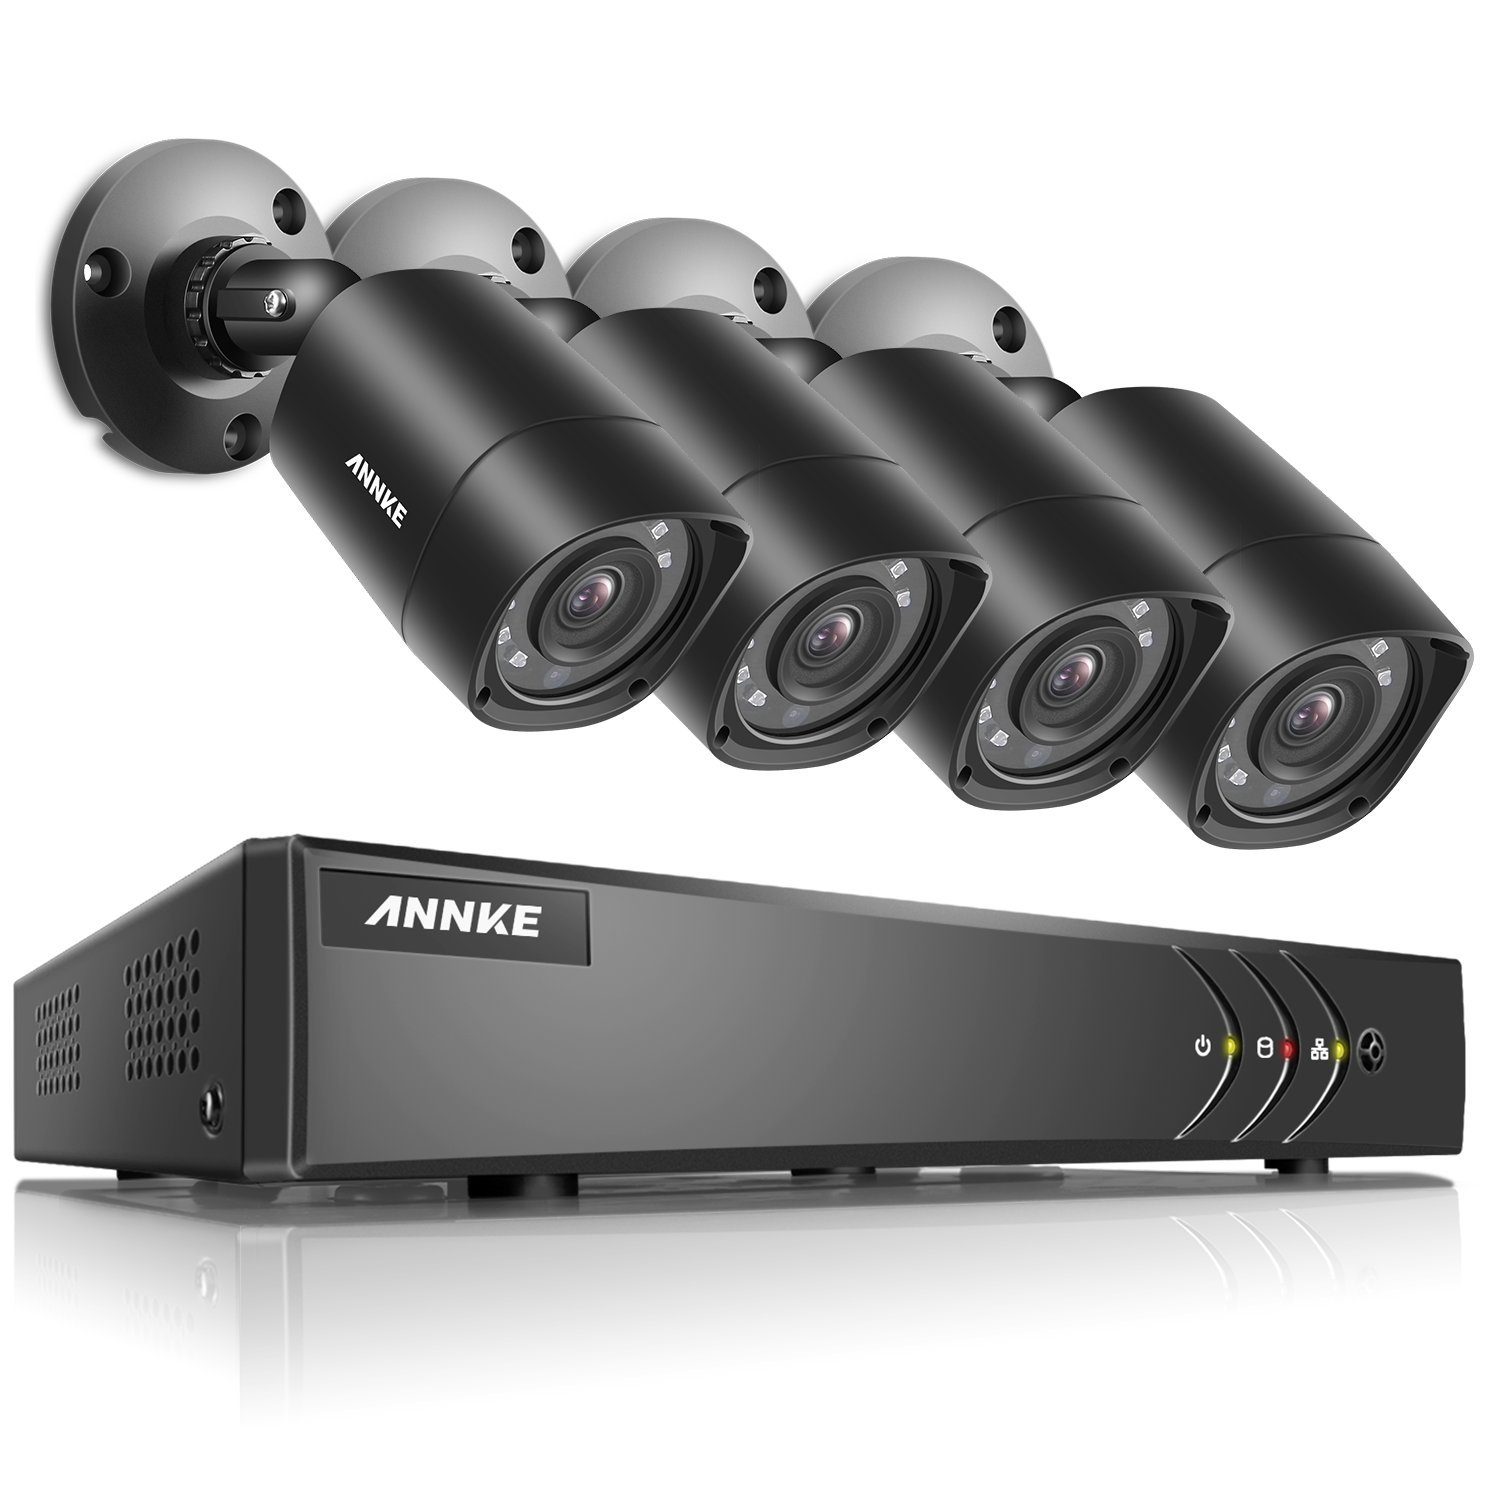 ANNKE 8+2 Channel Security Camera System 1080P Lite H.264+ DVR and (4) 1.0MP 720P Weatherproof Cameras, Email Alert with Snapshots, Enable H.264+ to Record longer, Save money (NO HDD Included)